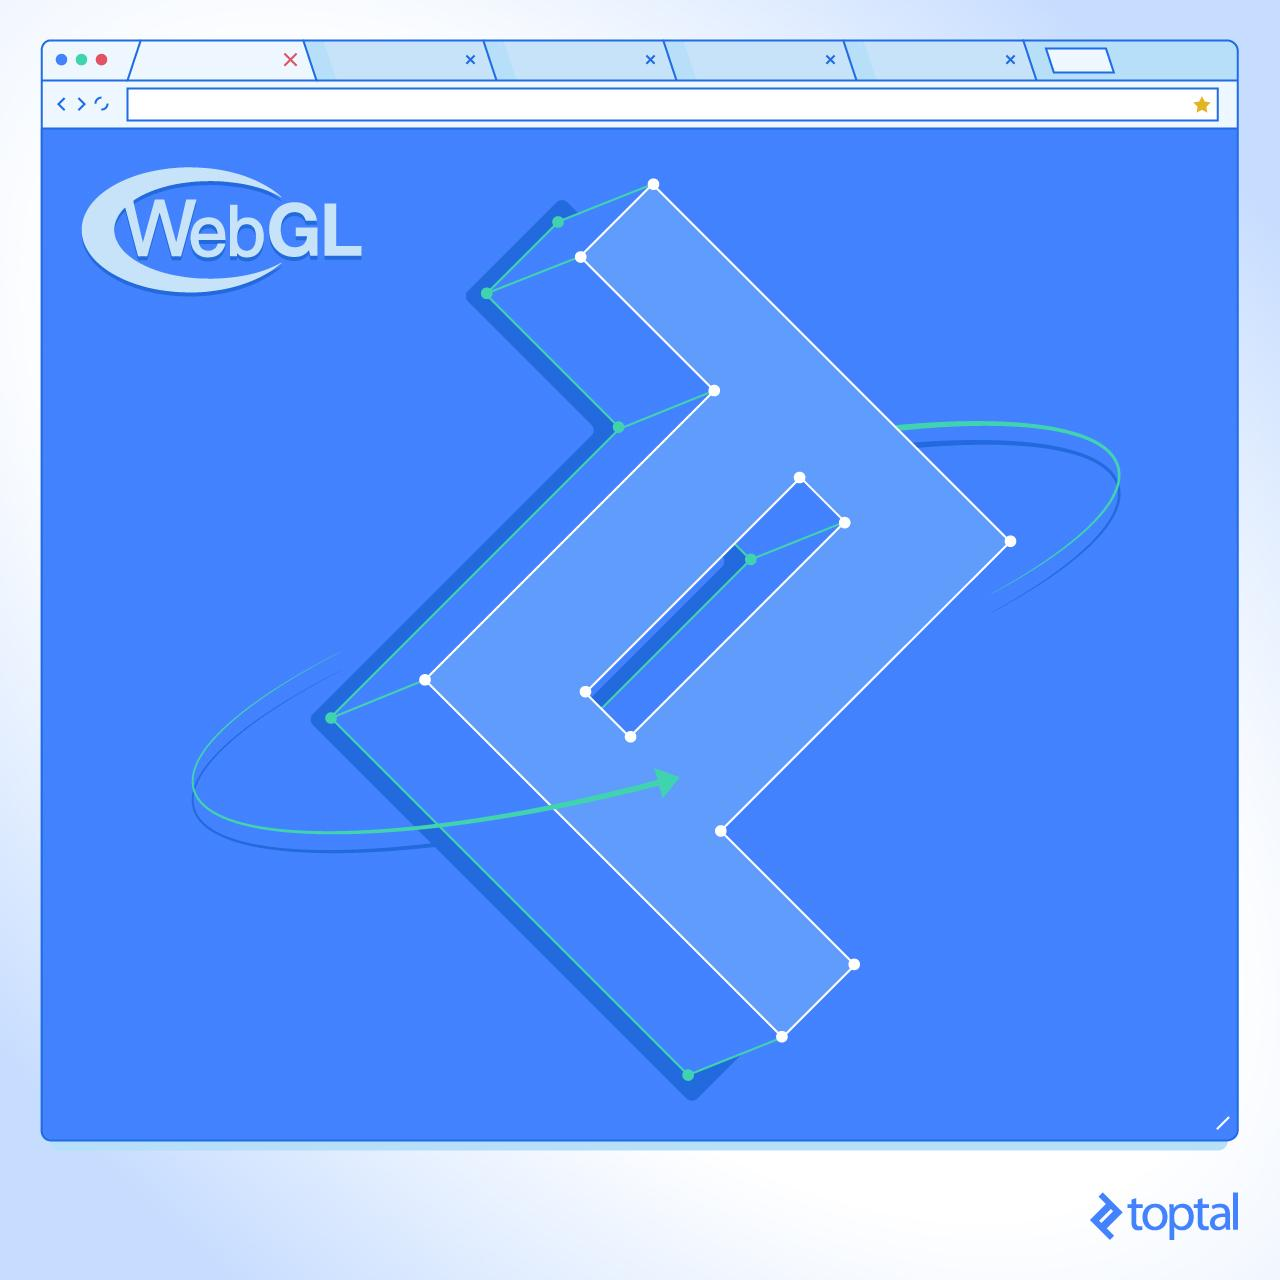 Illustration of a 3D Toptal logo on a WebGL canvas